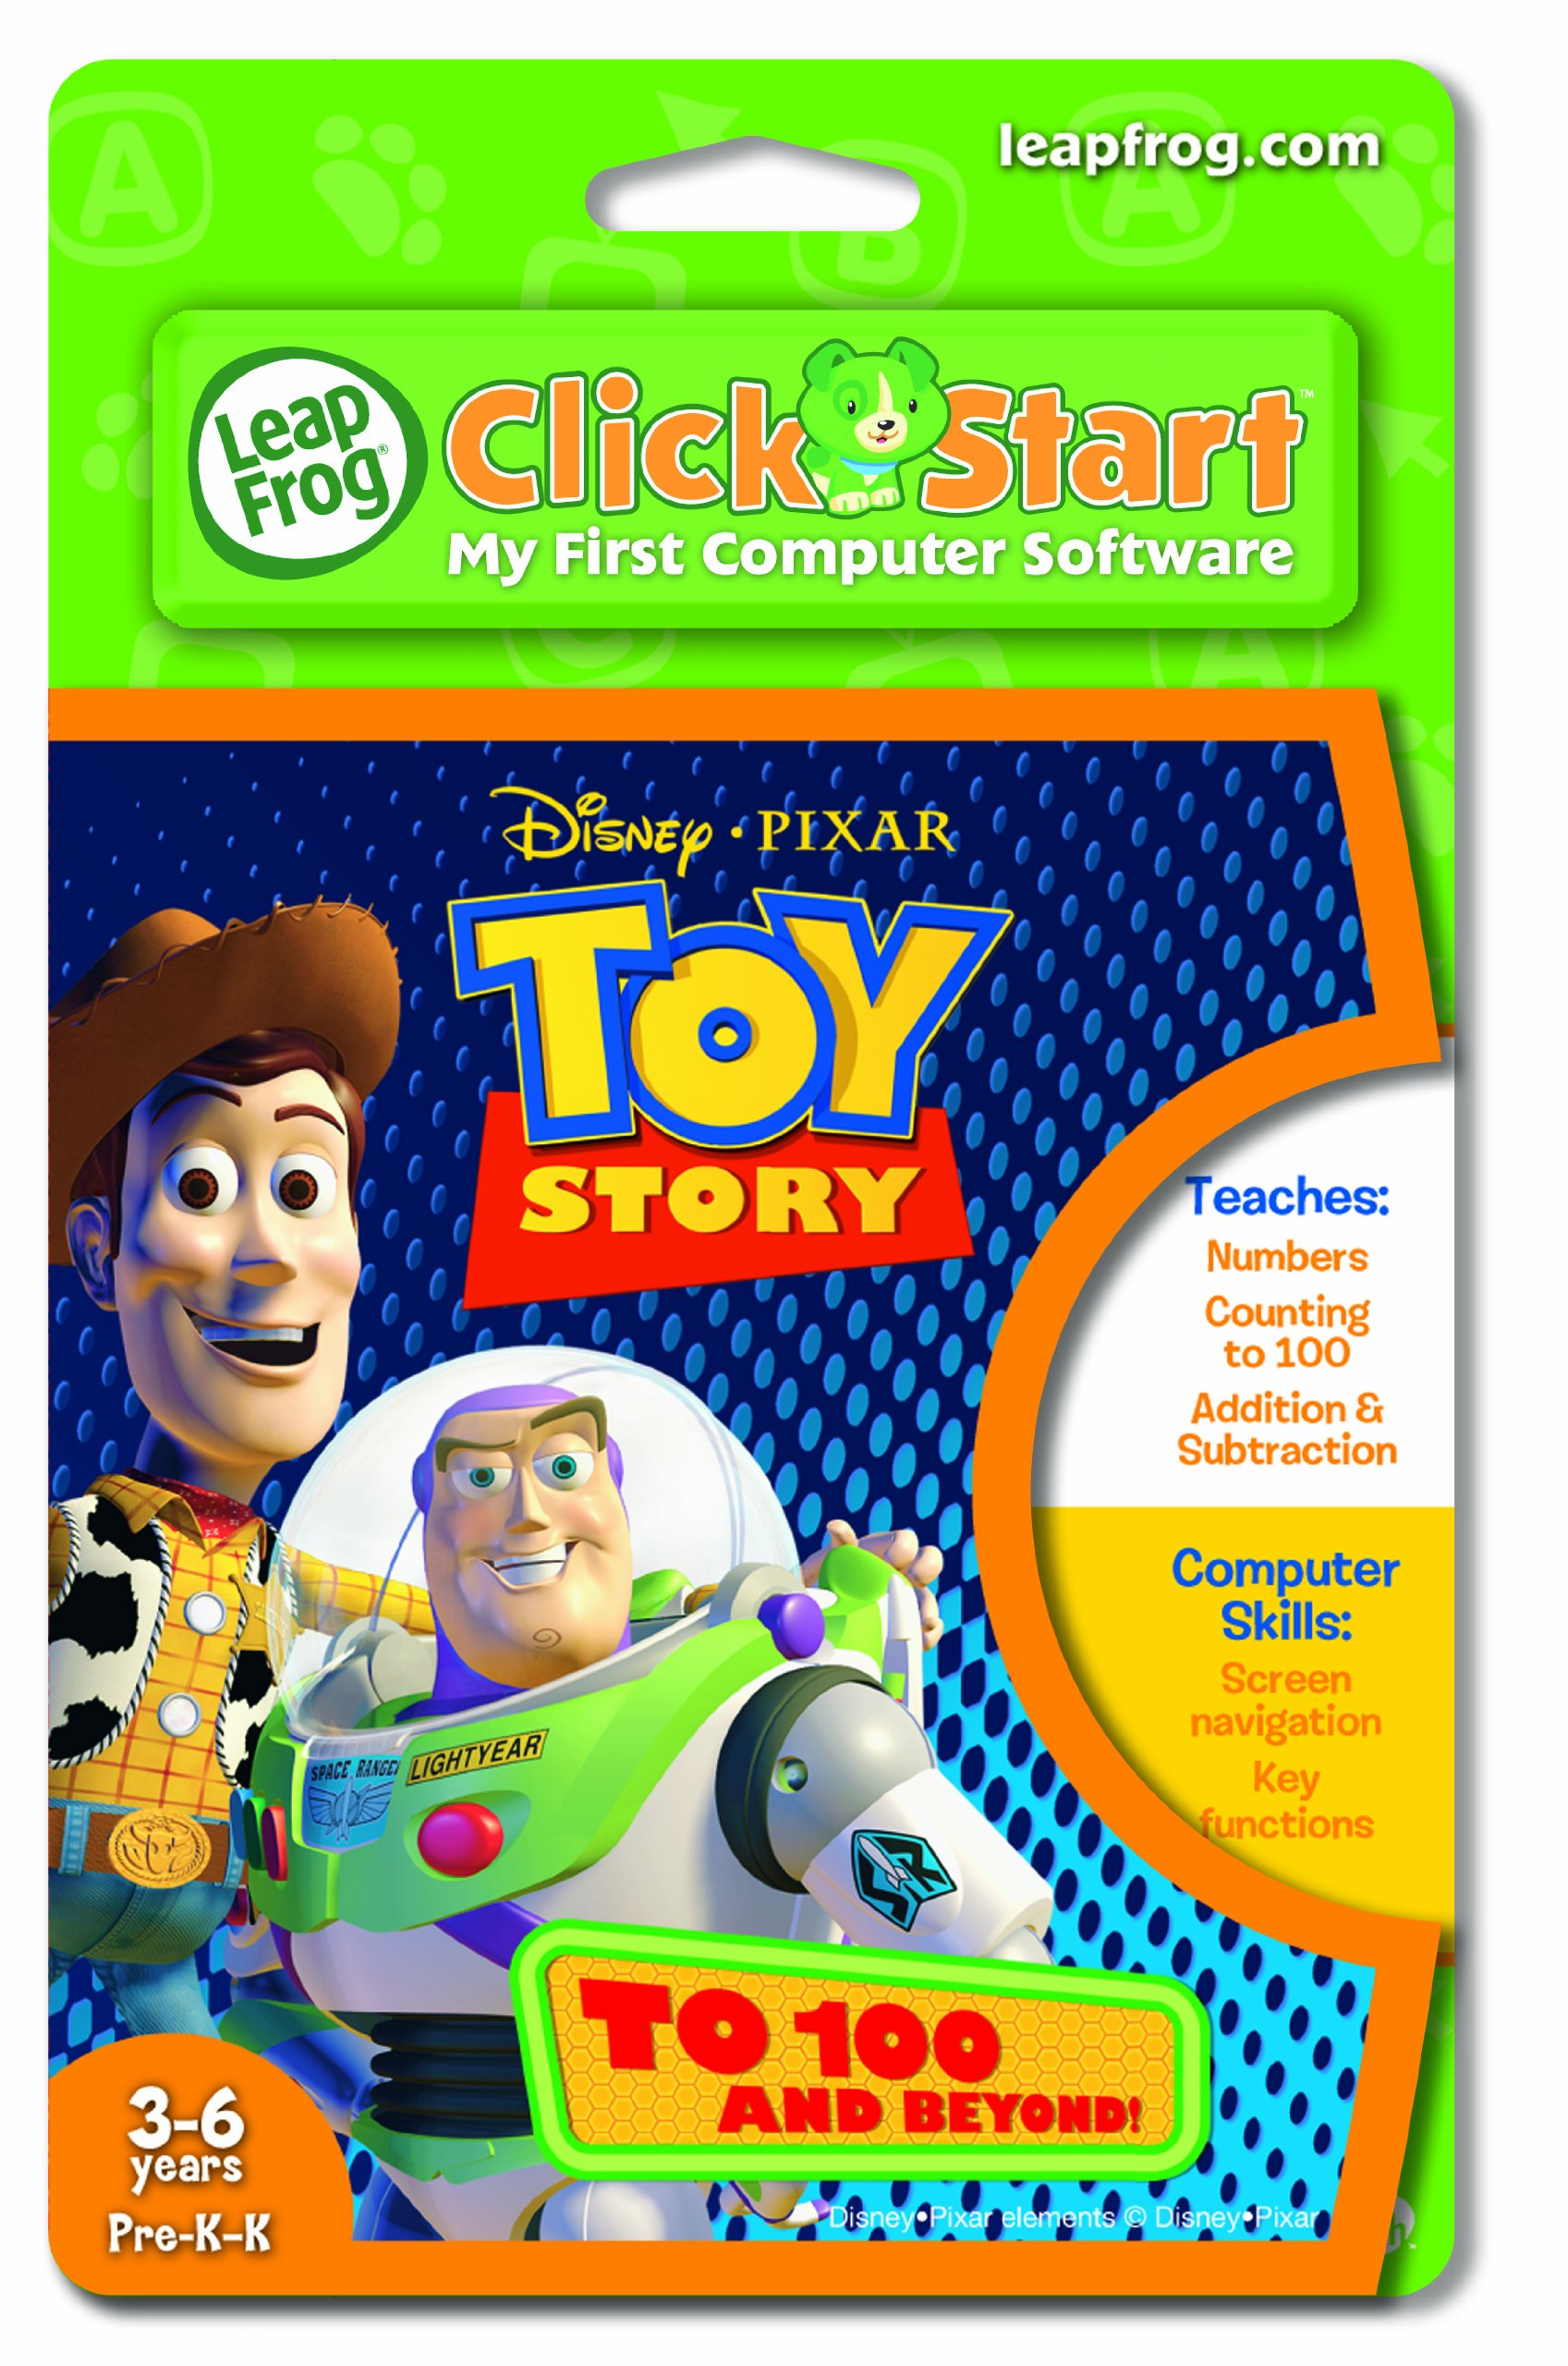 Leapfrog Clickstart Educational Software:Toy Story To 100 + Beyond